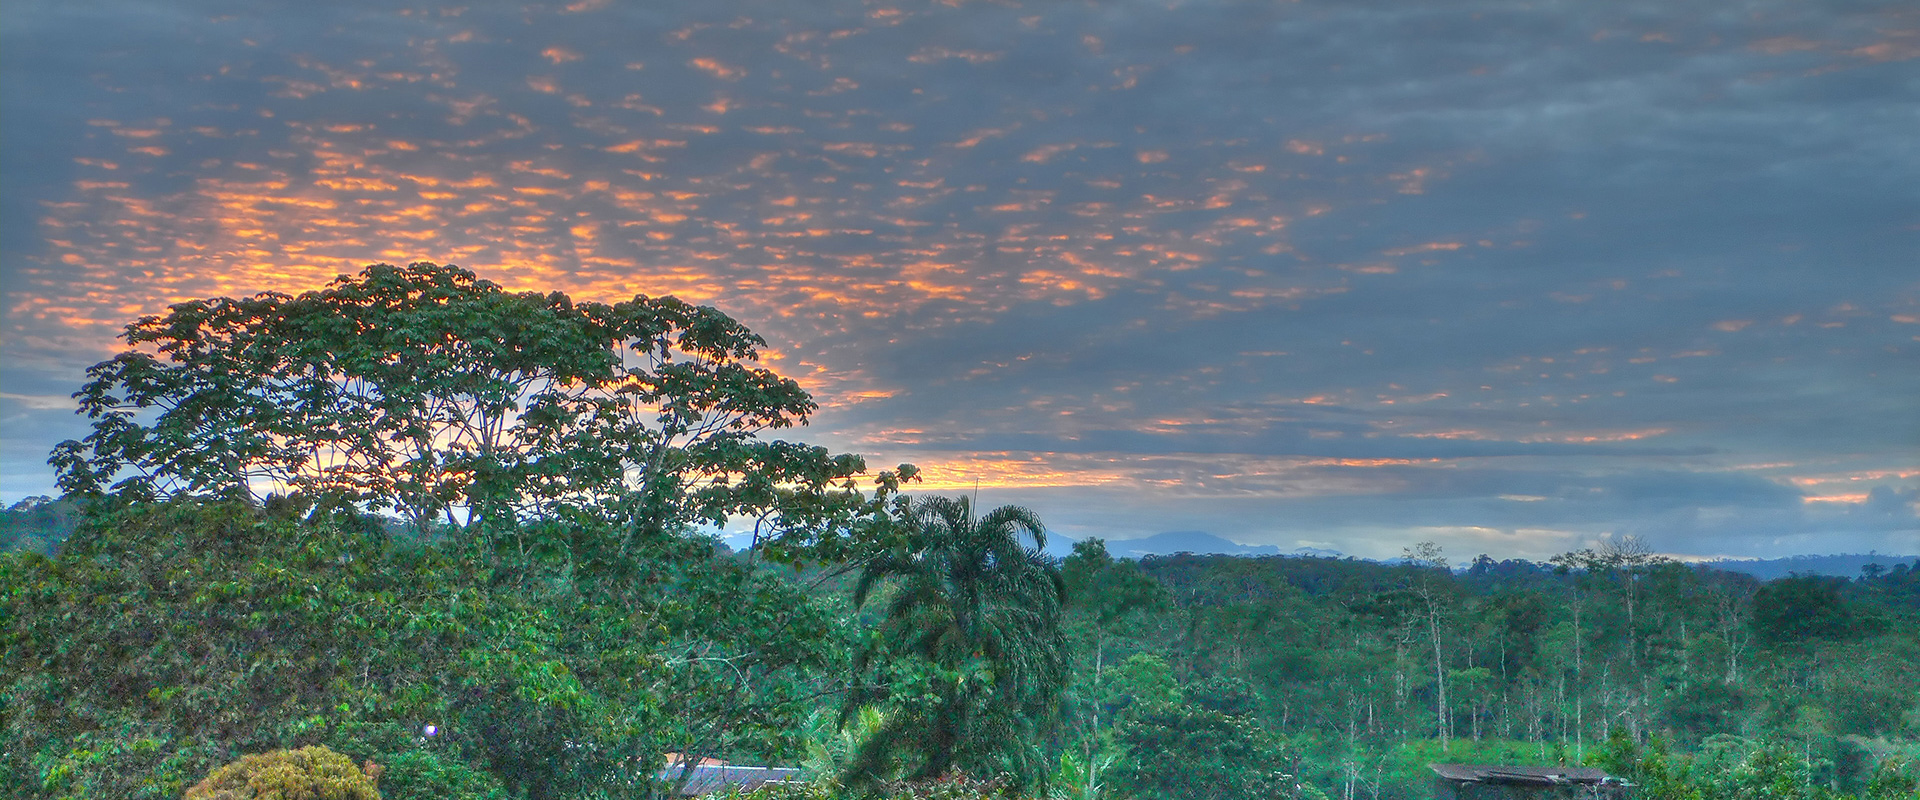 Amazon Rainforest Sunset